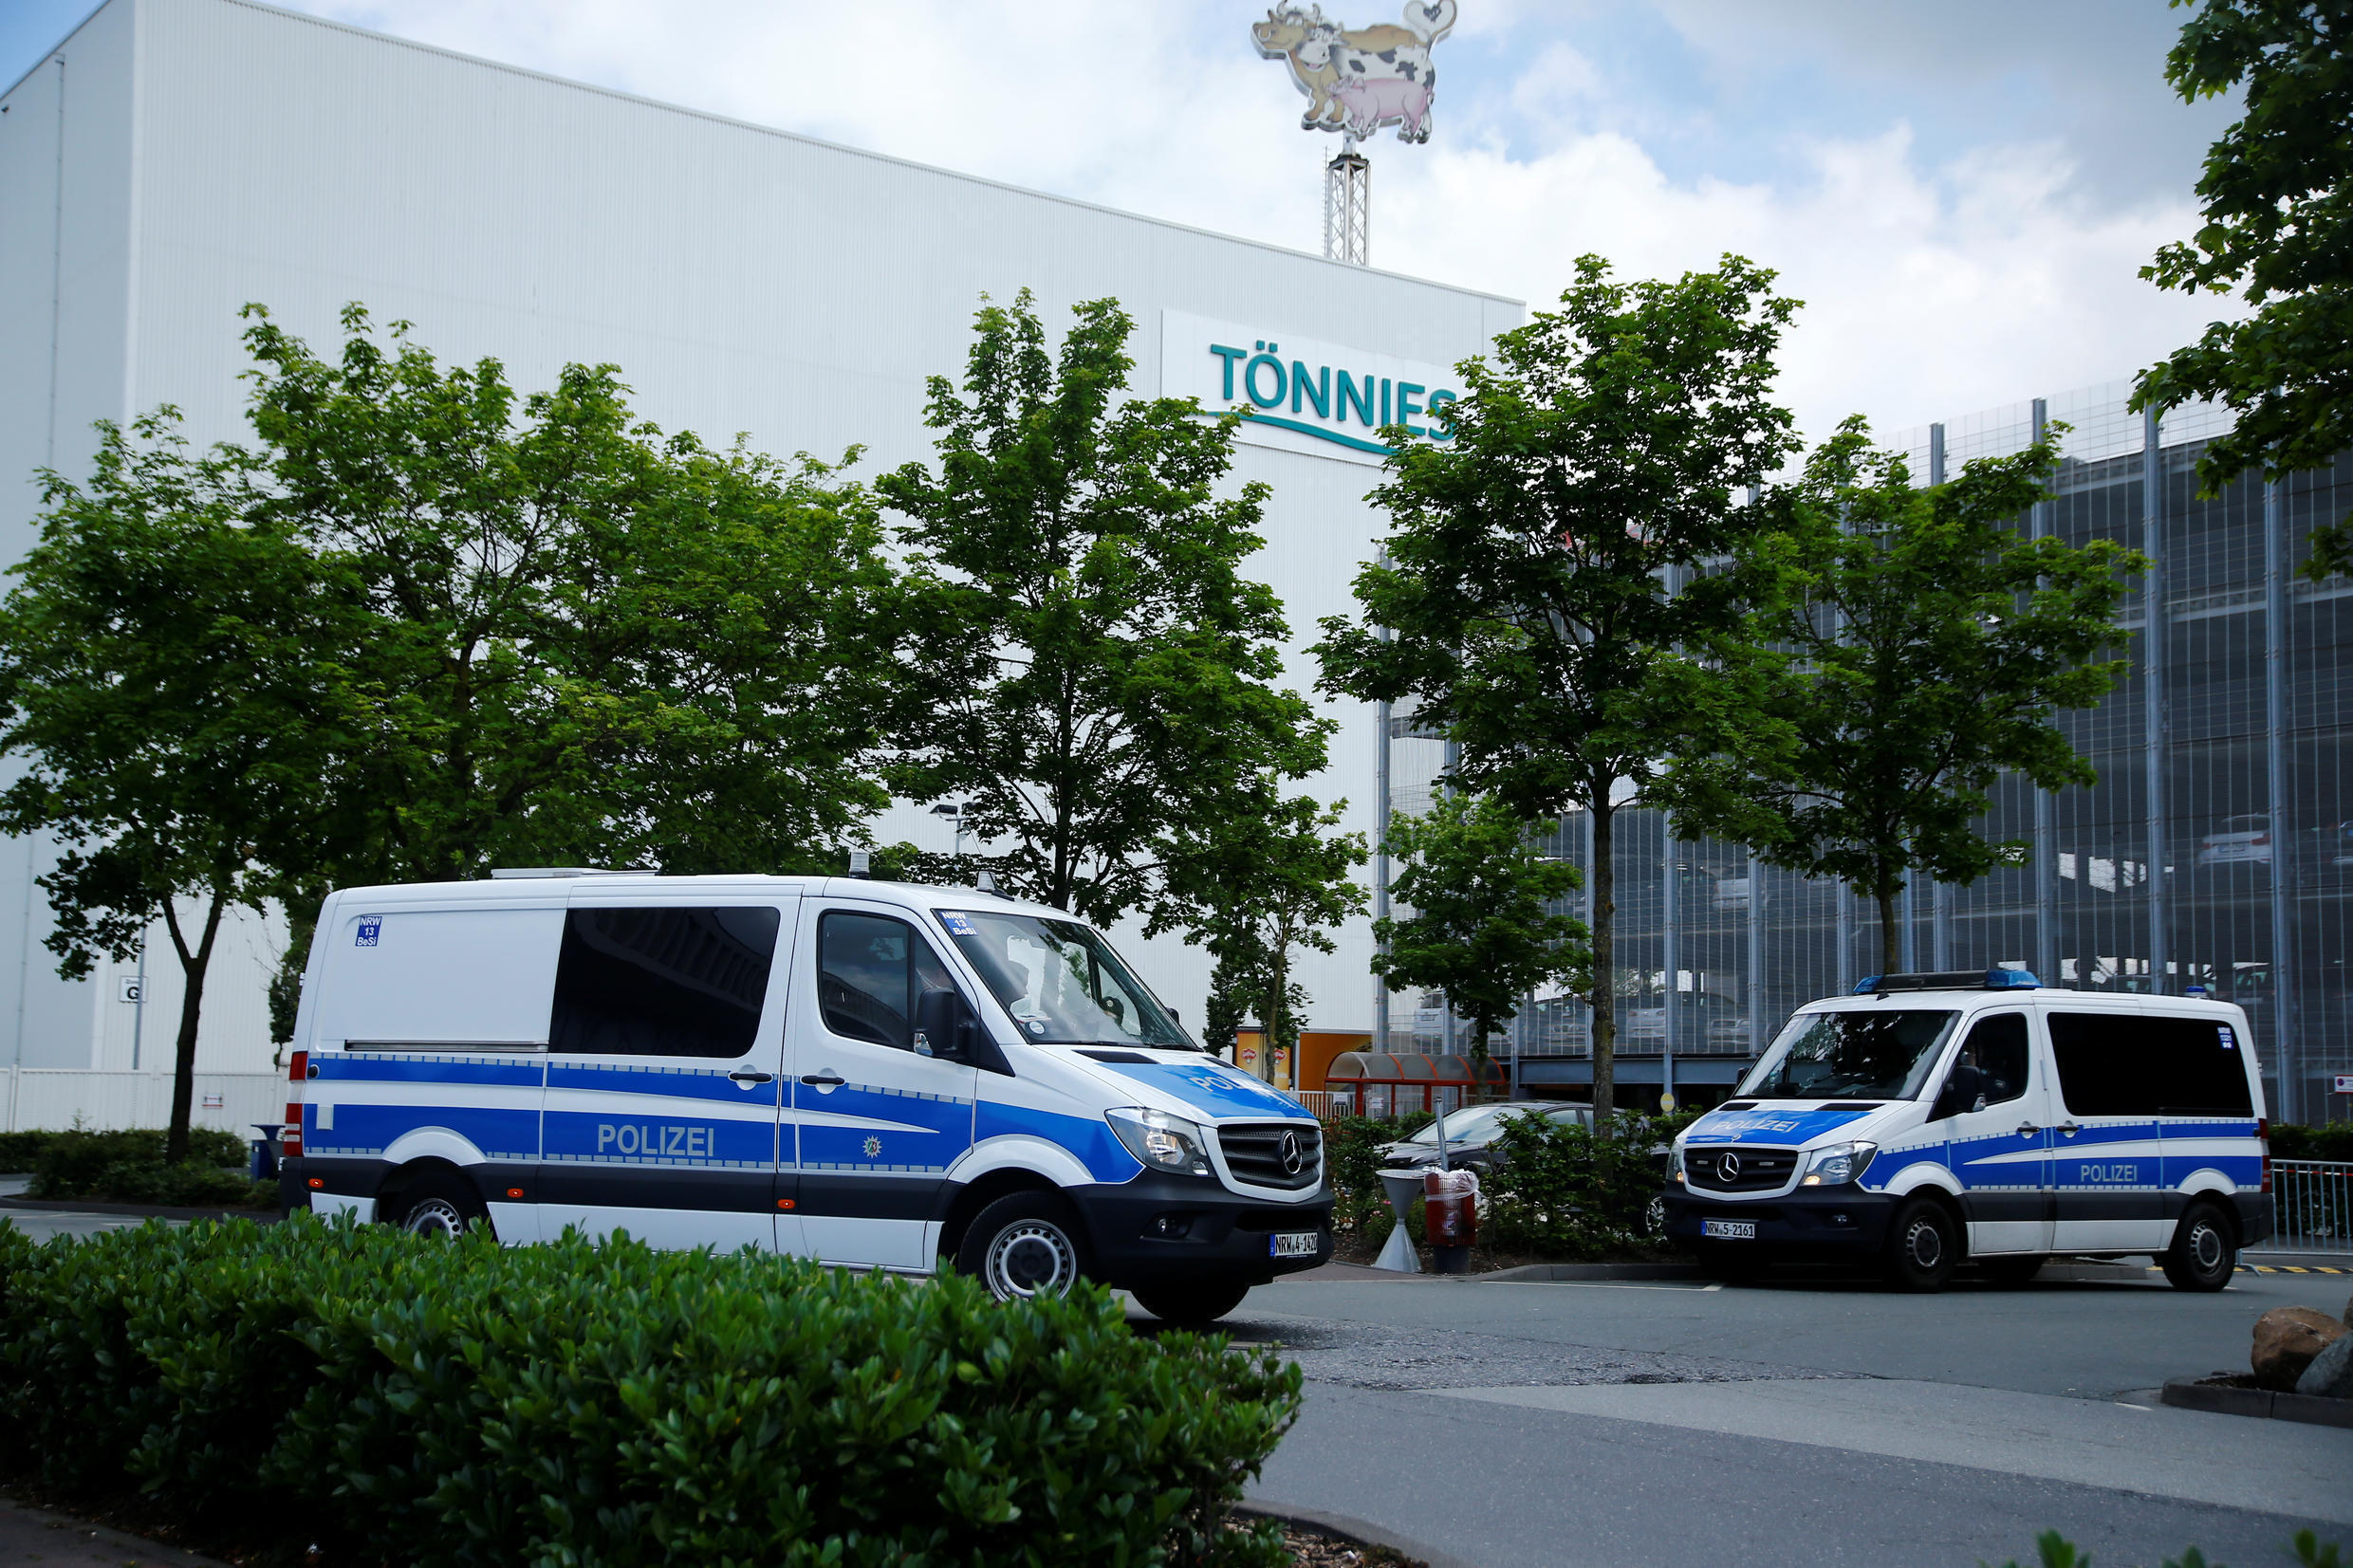 Police vehicles are seen outside the main Toennies meat factory that had to be shut down because of the coronavirus disease (COVID-19) outbreak among its employees, in Rheda-Wiedenbrueck, Germany June 20, 2020.